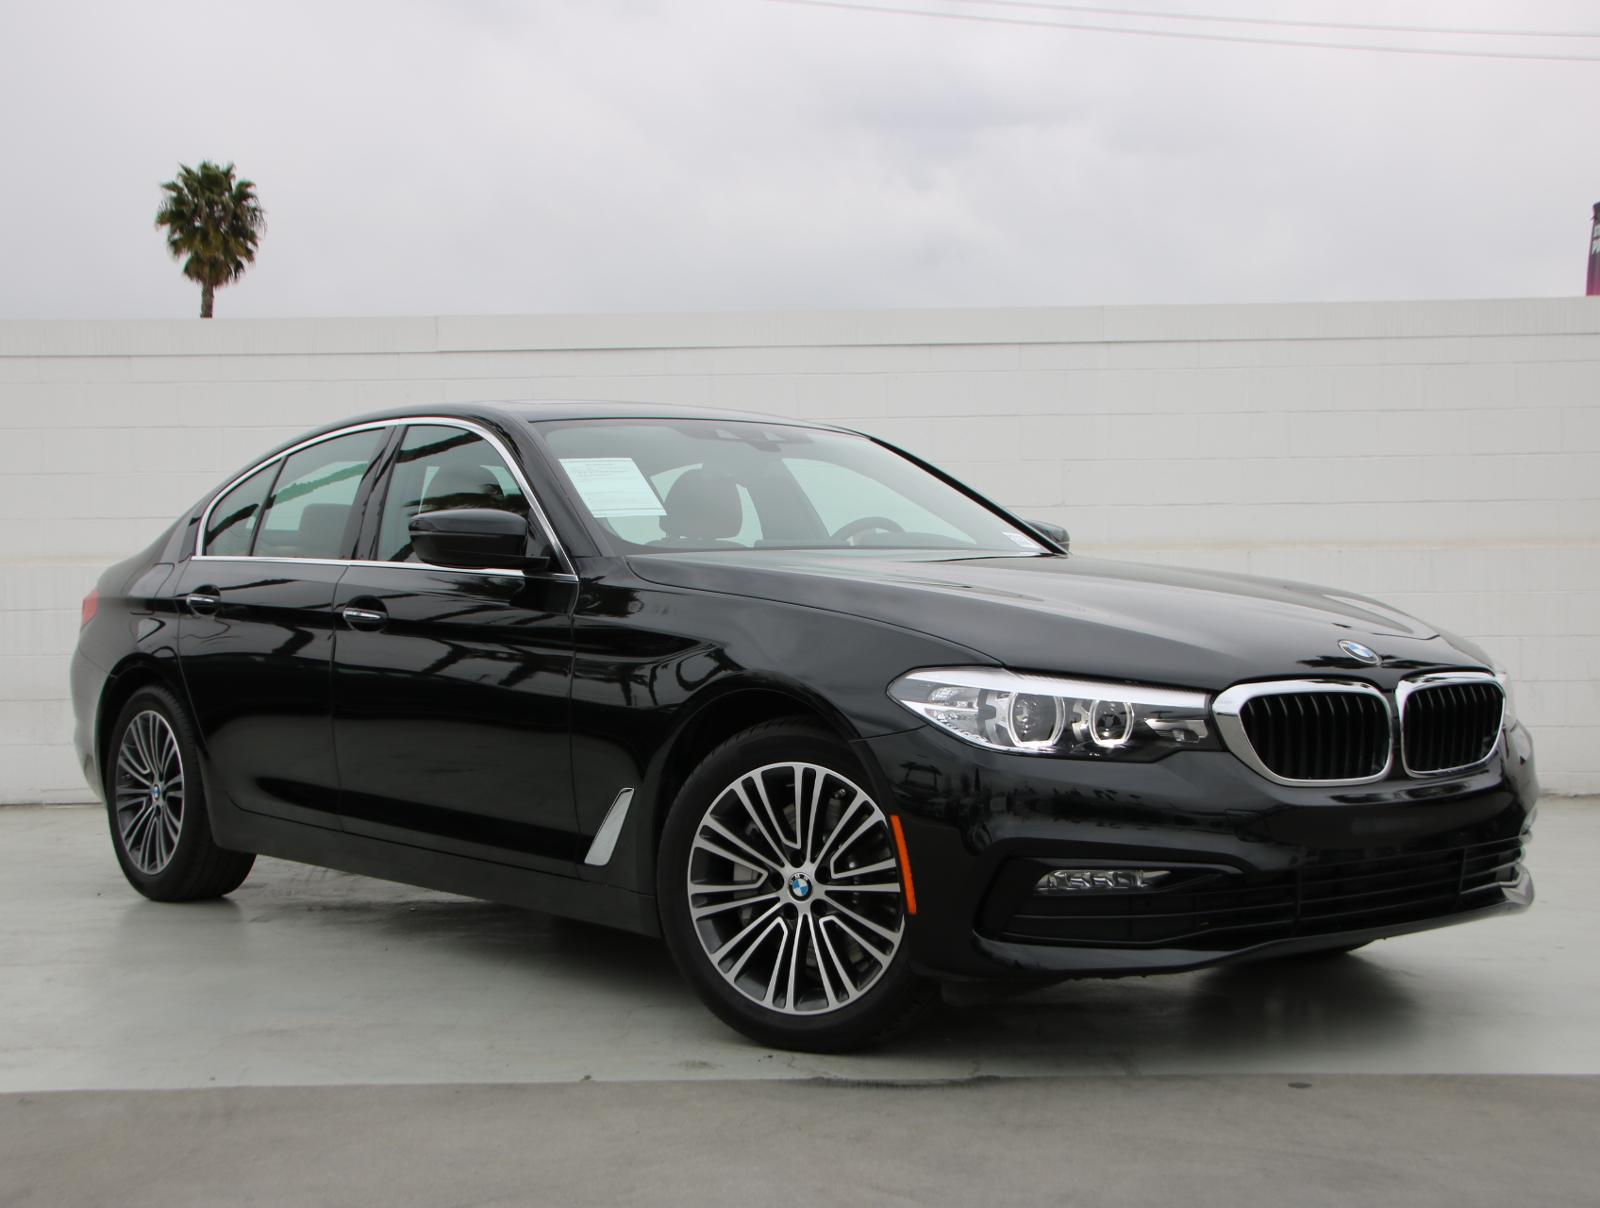 Bmw Pre Owned >> Pre Owned 2018 Bmw 5 Series 530i 530i Sedan In North Hollywood